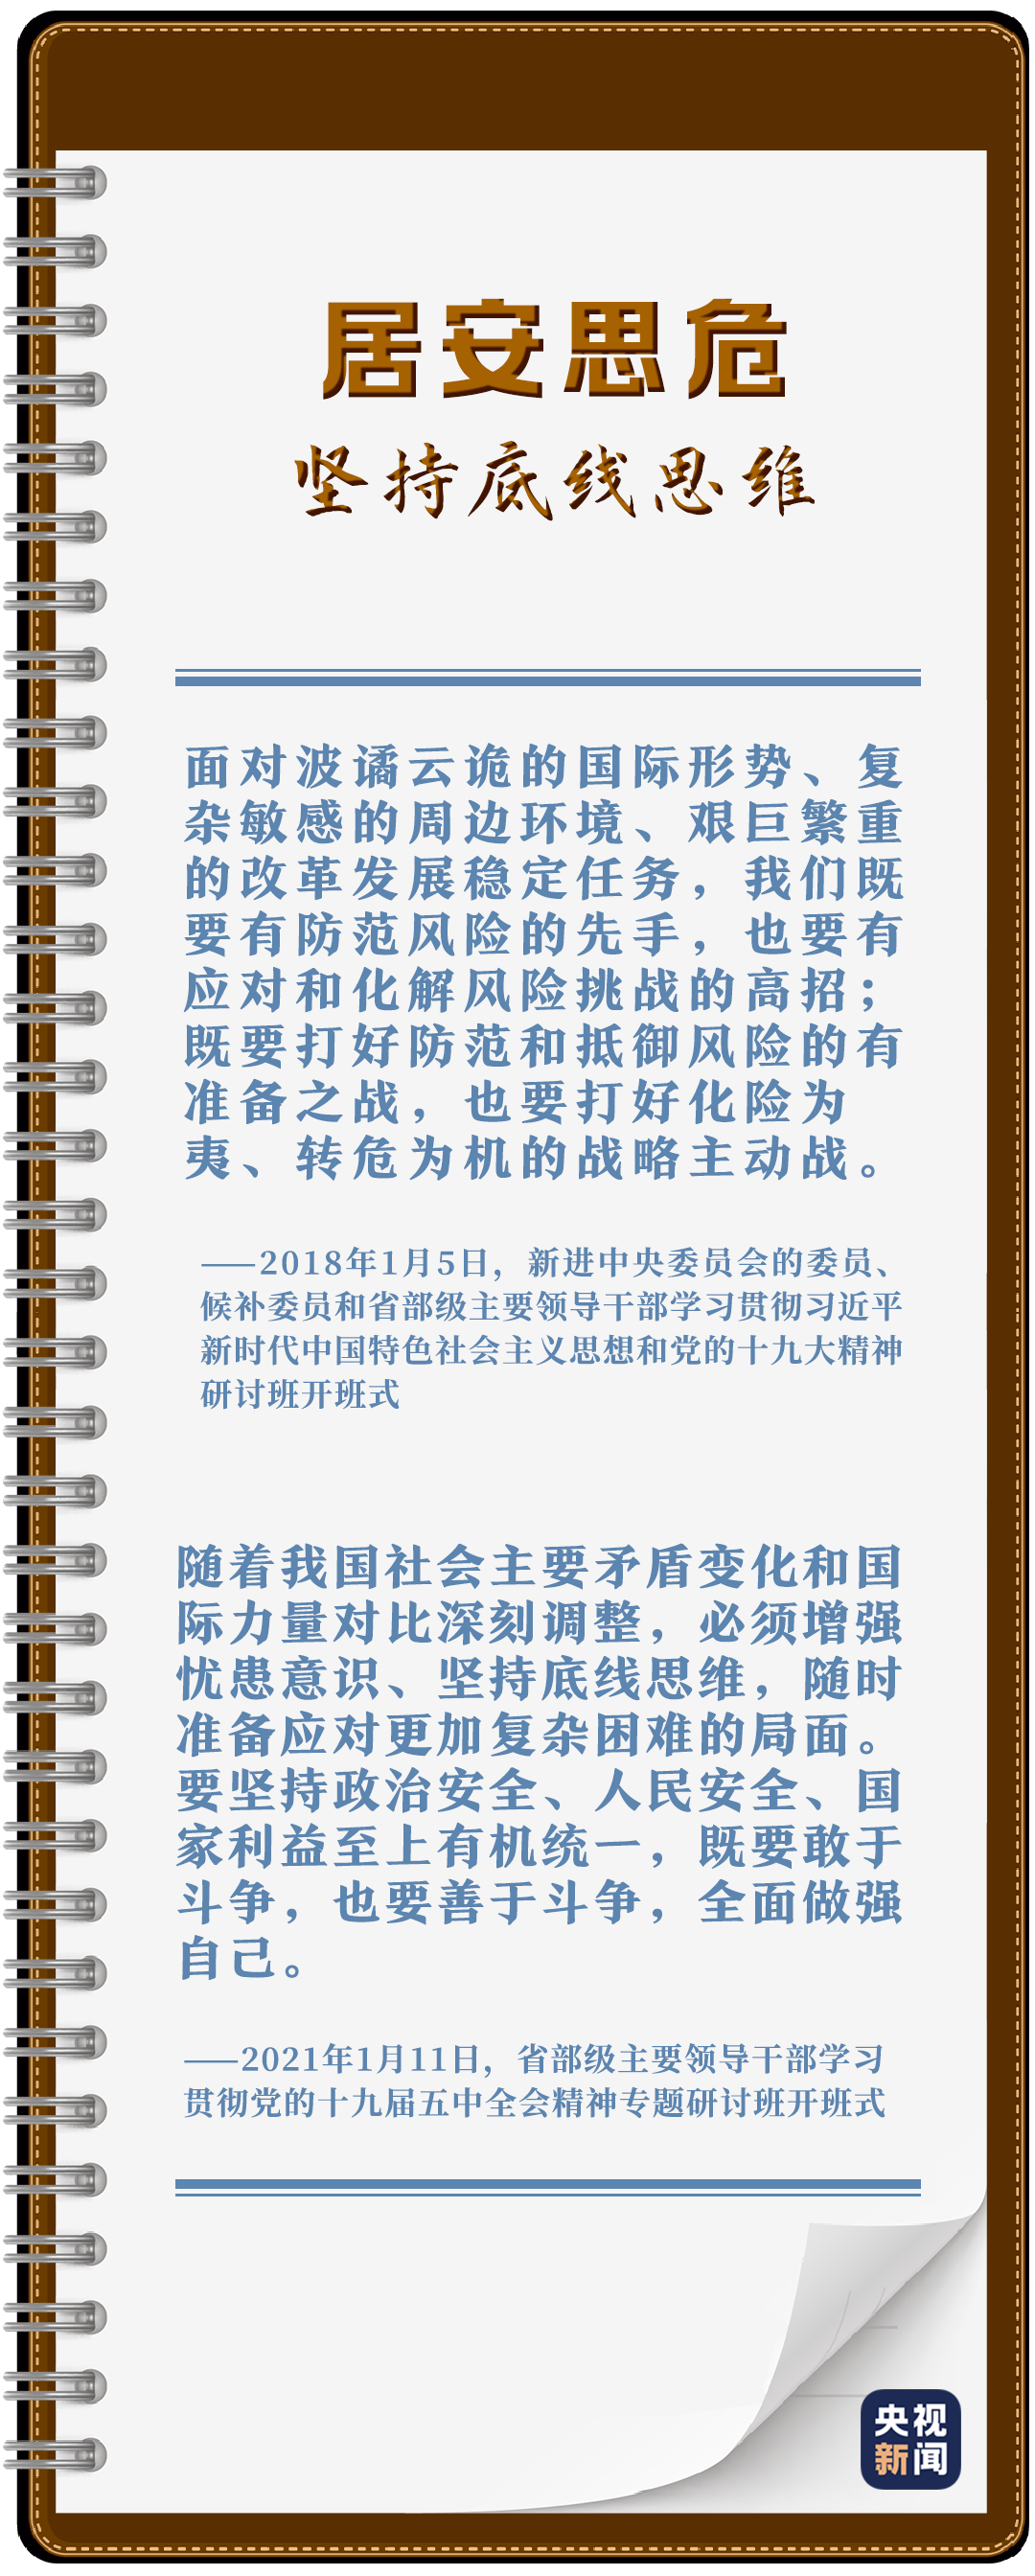 """What did the general secretary say about the 8th """"New Year's first lesson""""? Take study notes together(4)"""